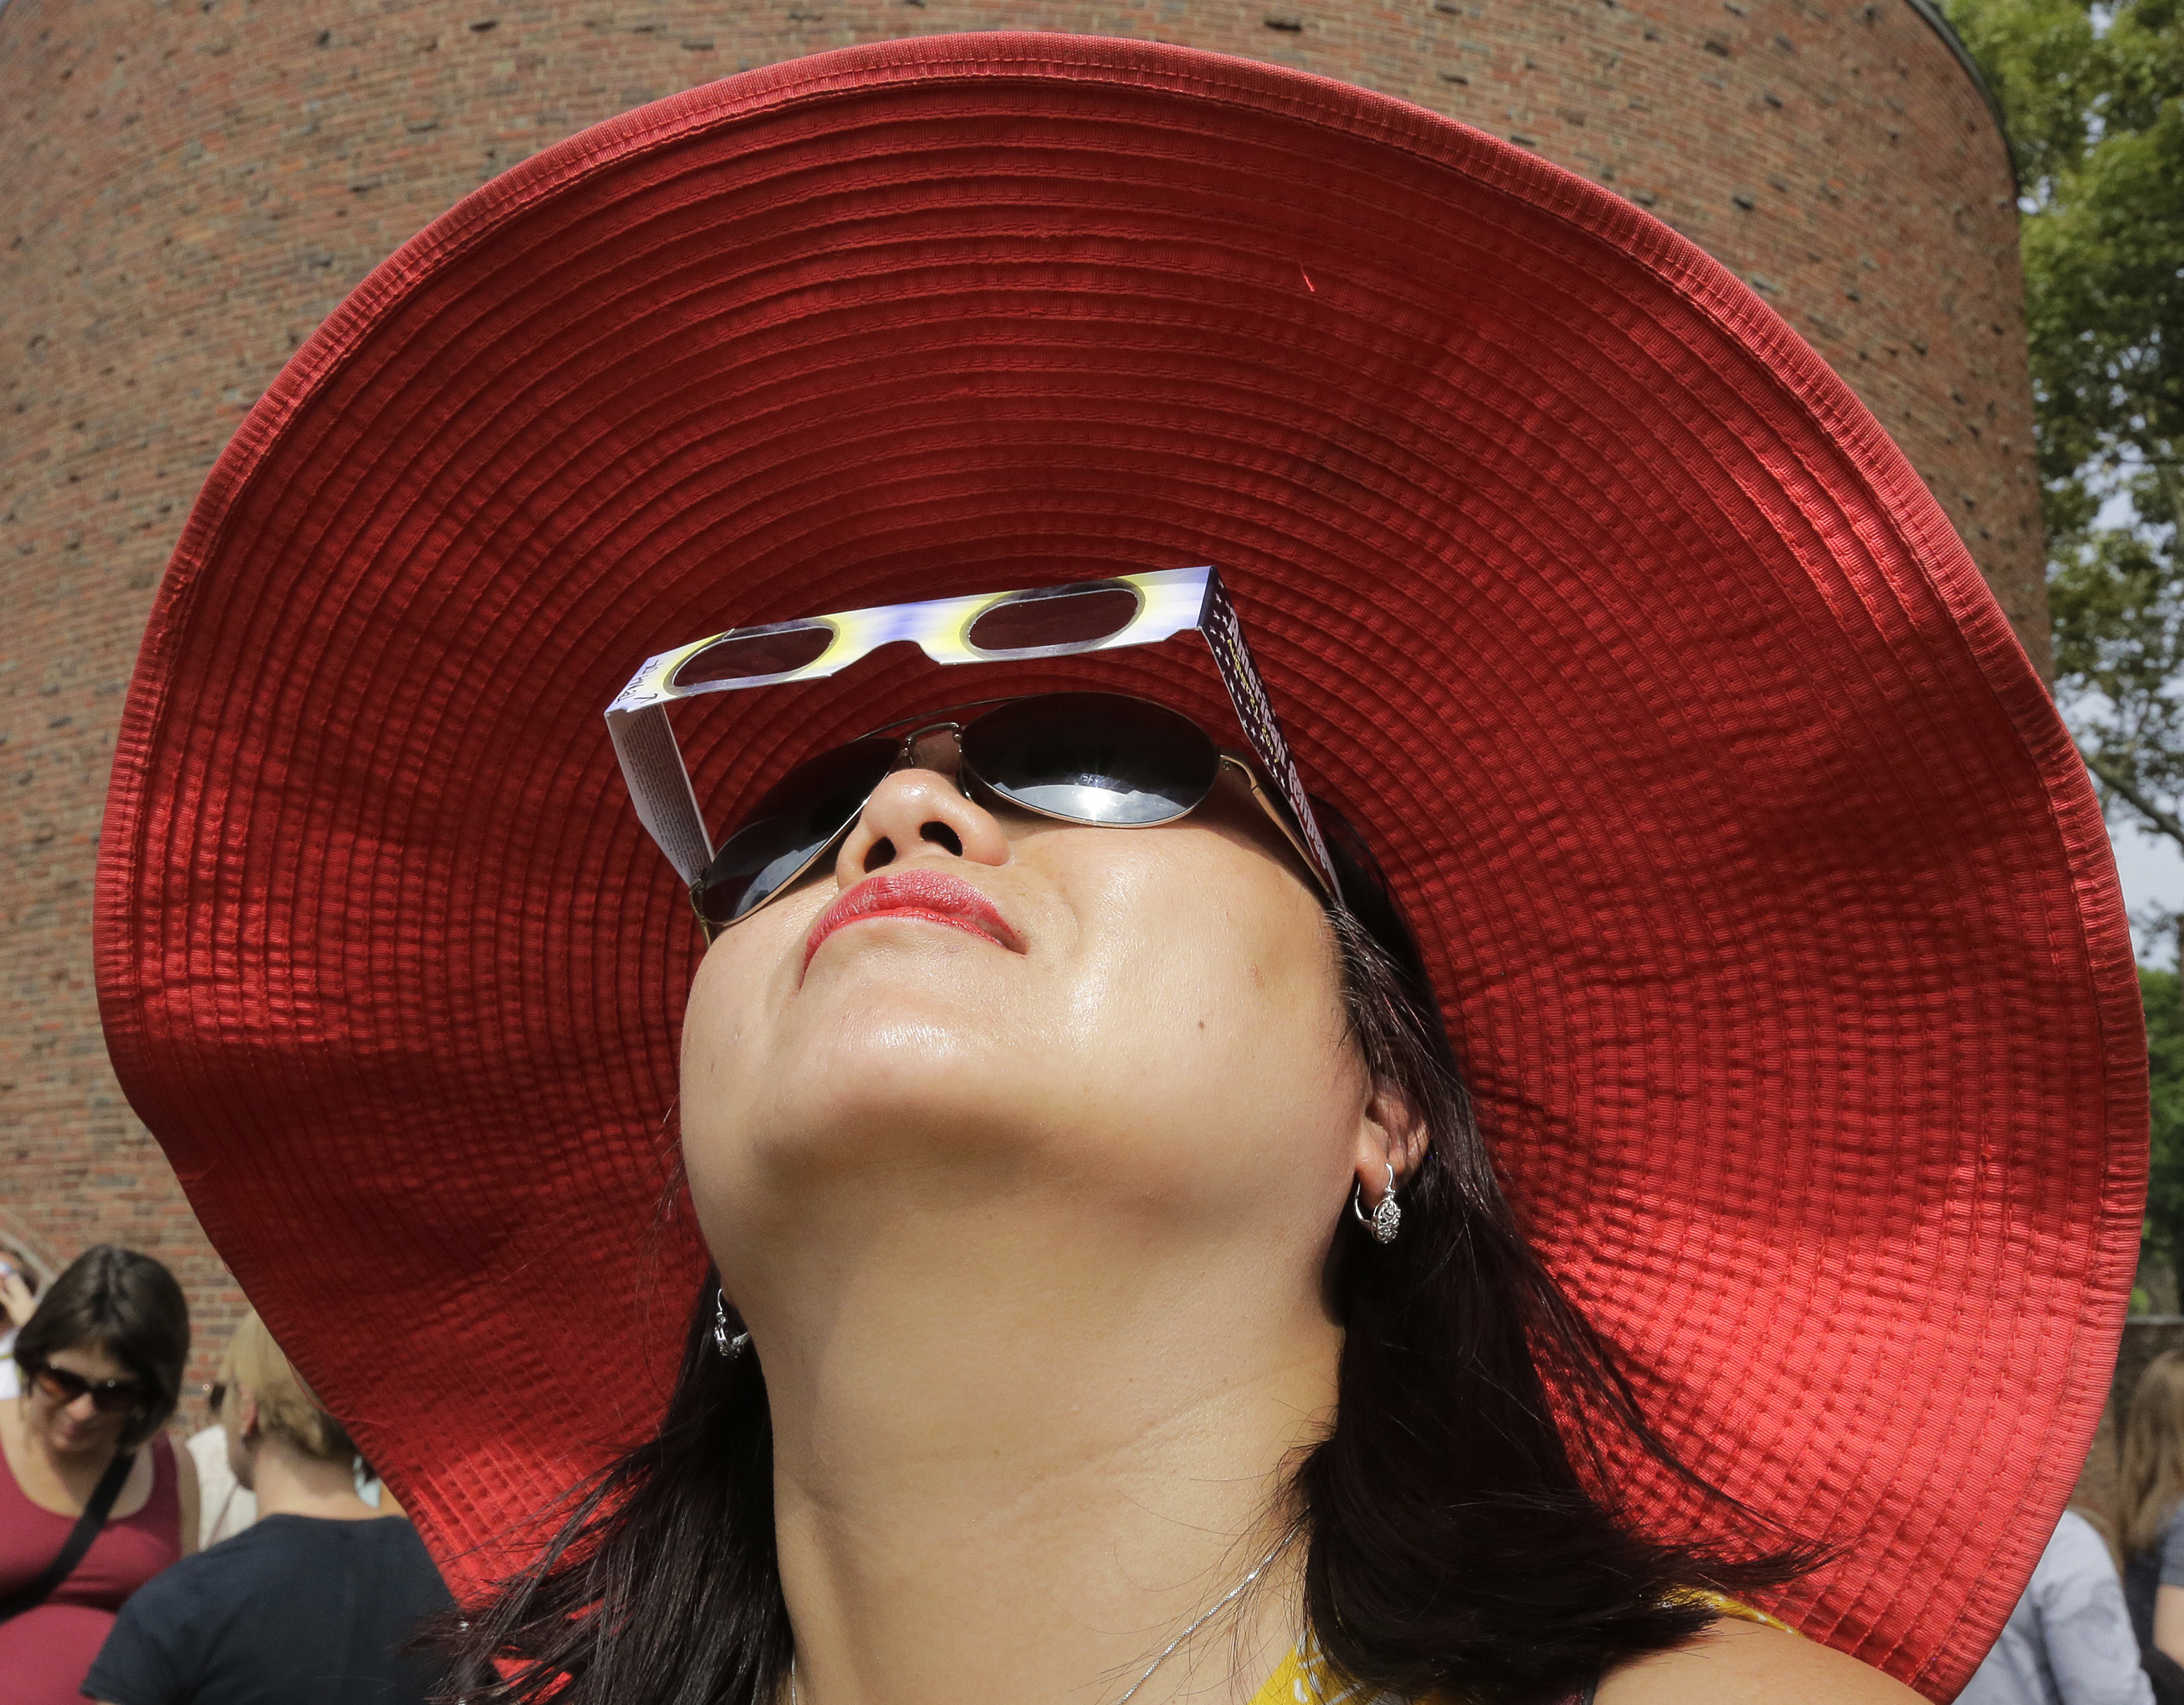 Someone uses protective glasses to view the solar eclipse